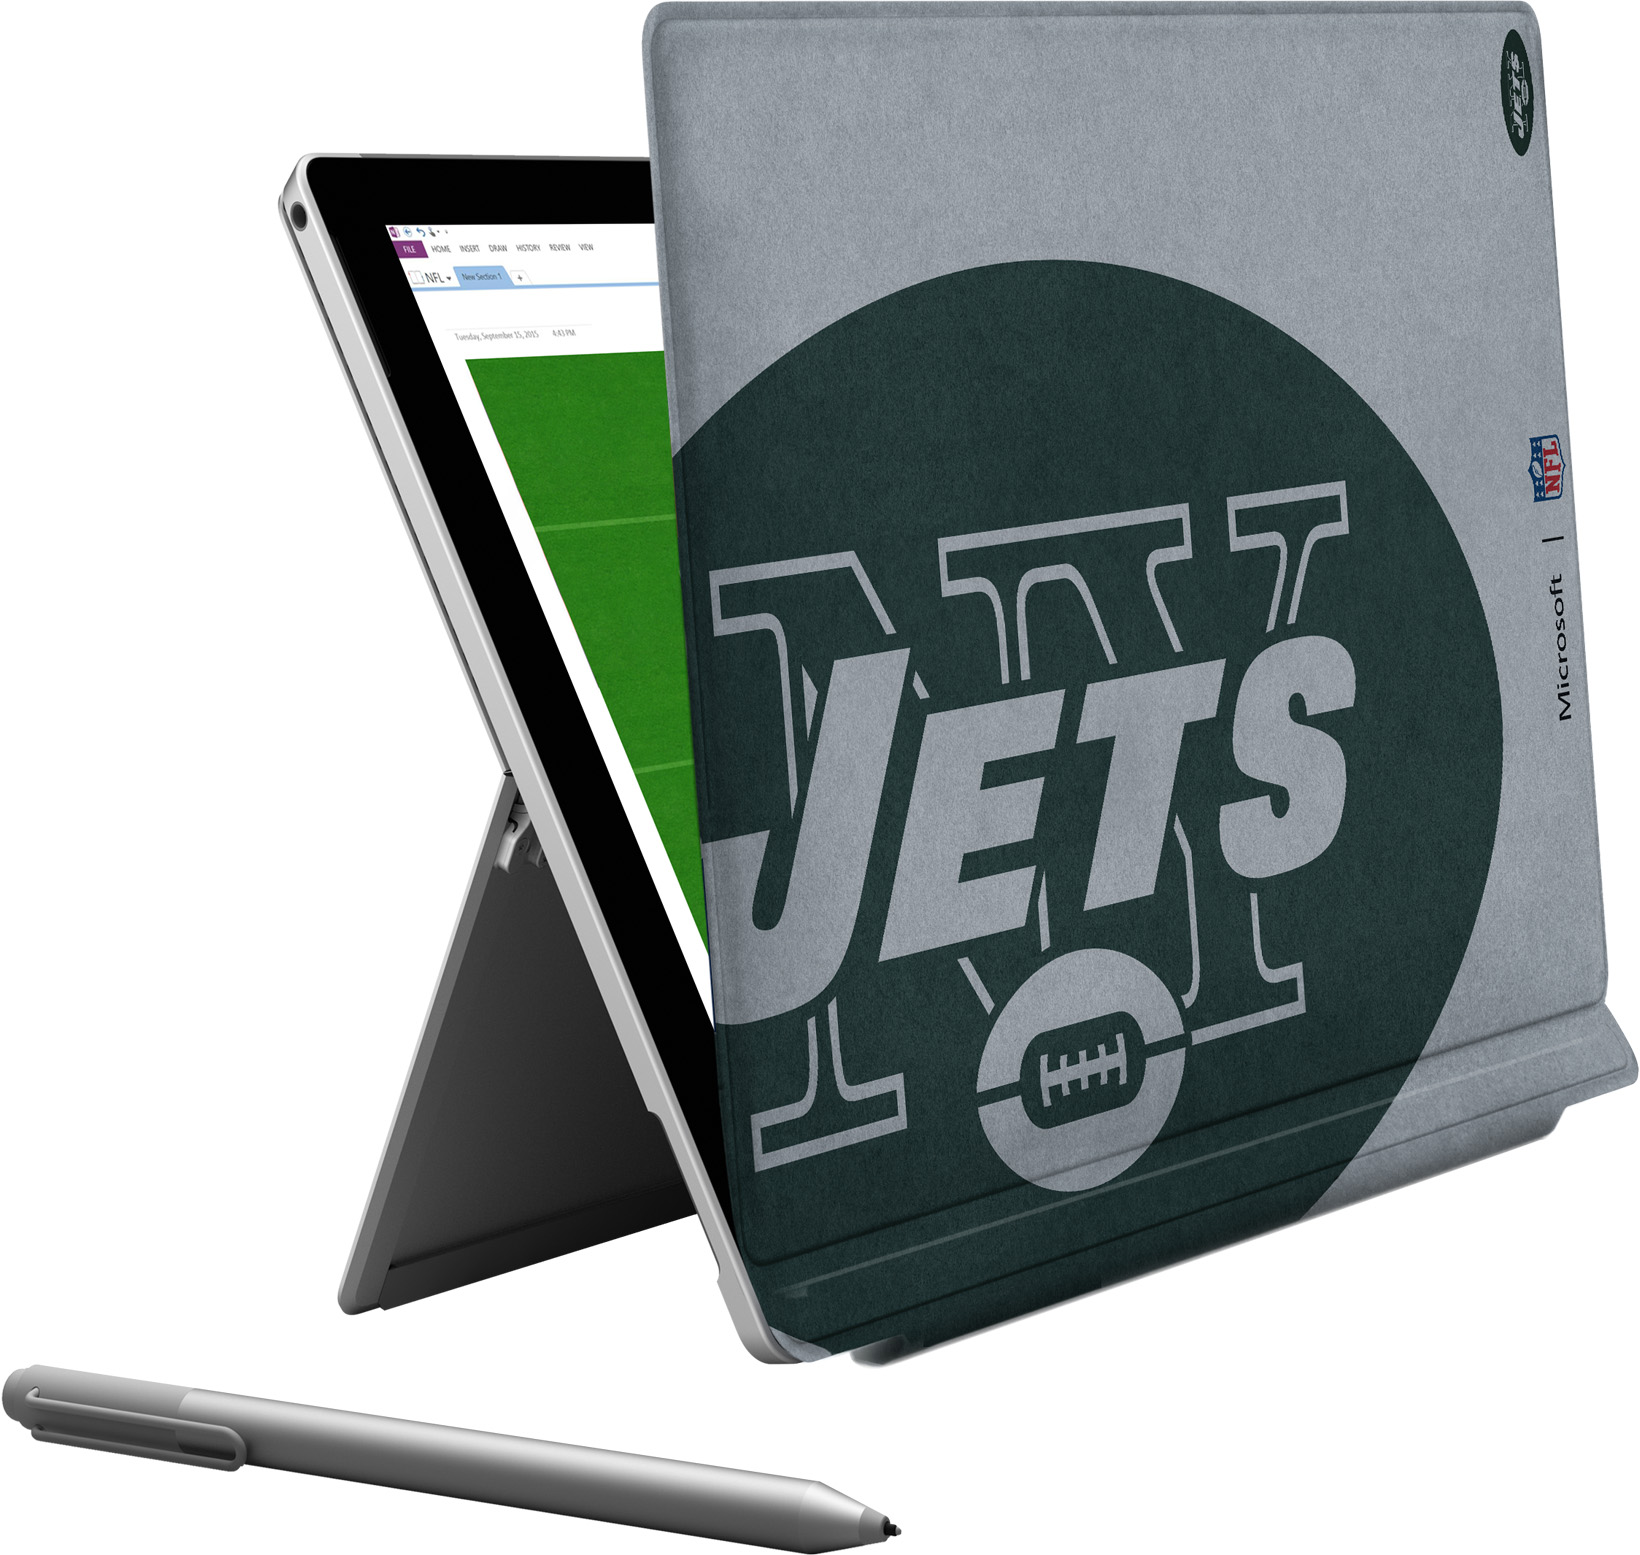 Microsoft Surface Pro 4 New York Jets Type Cover